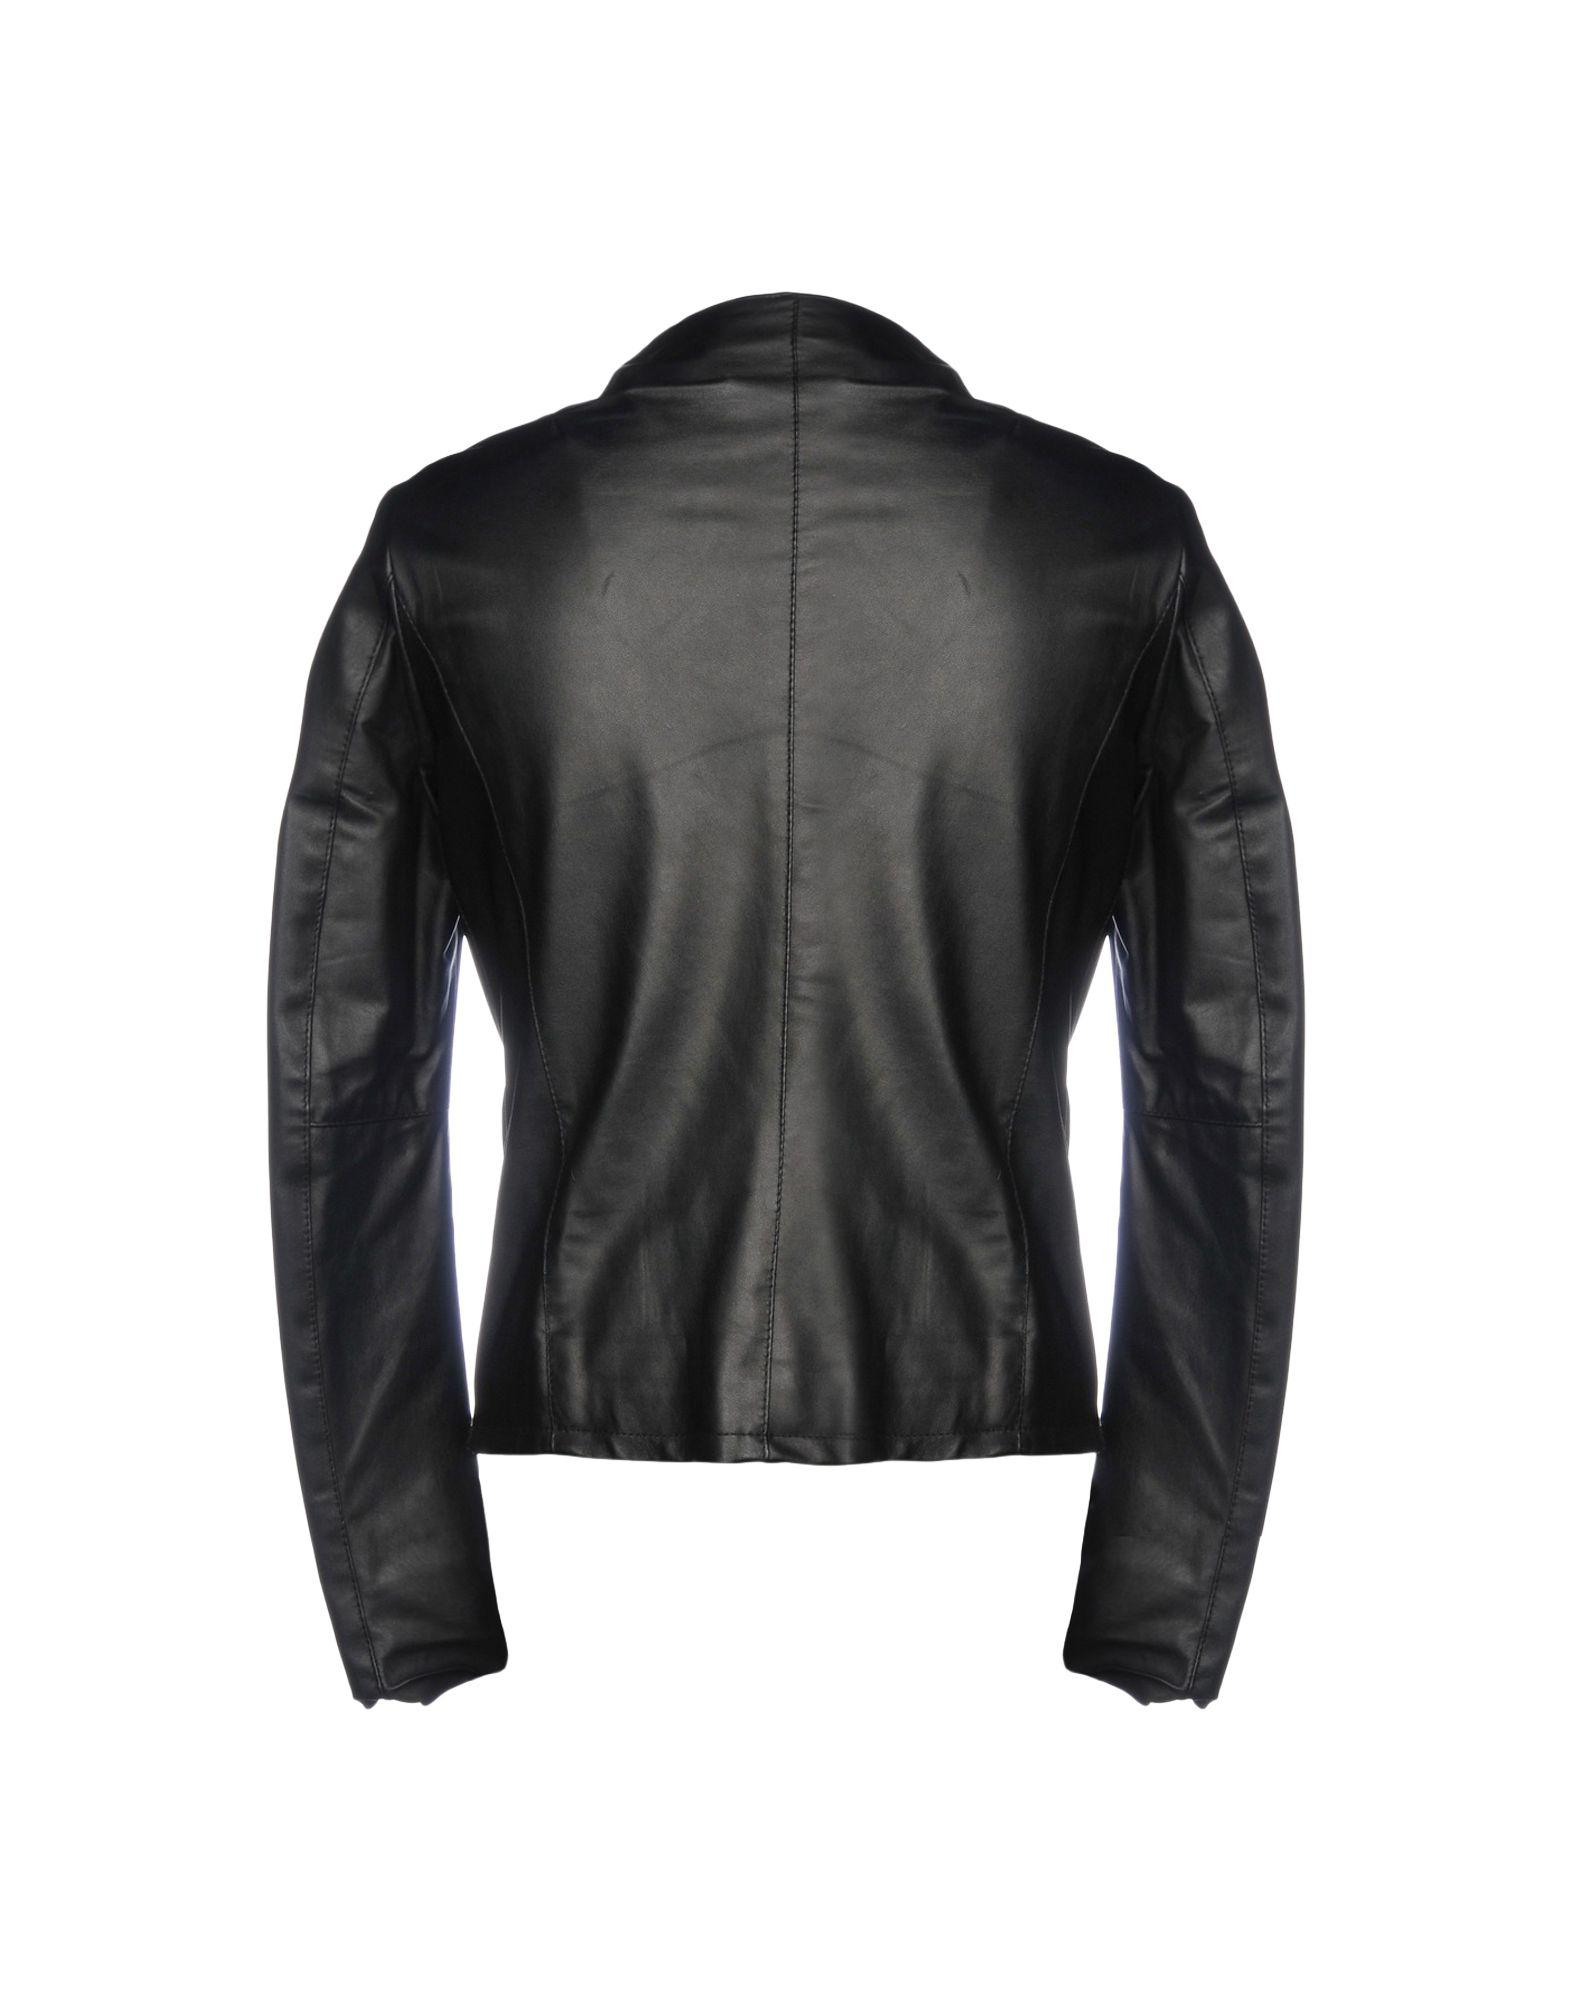 MNML Couture Leather Jacket in Black for Men